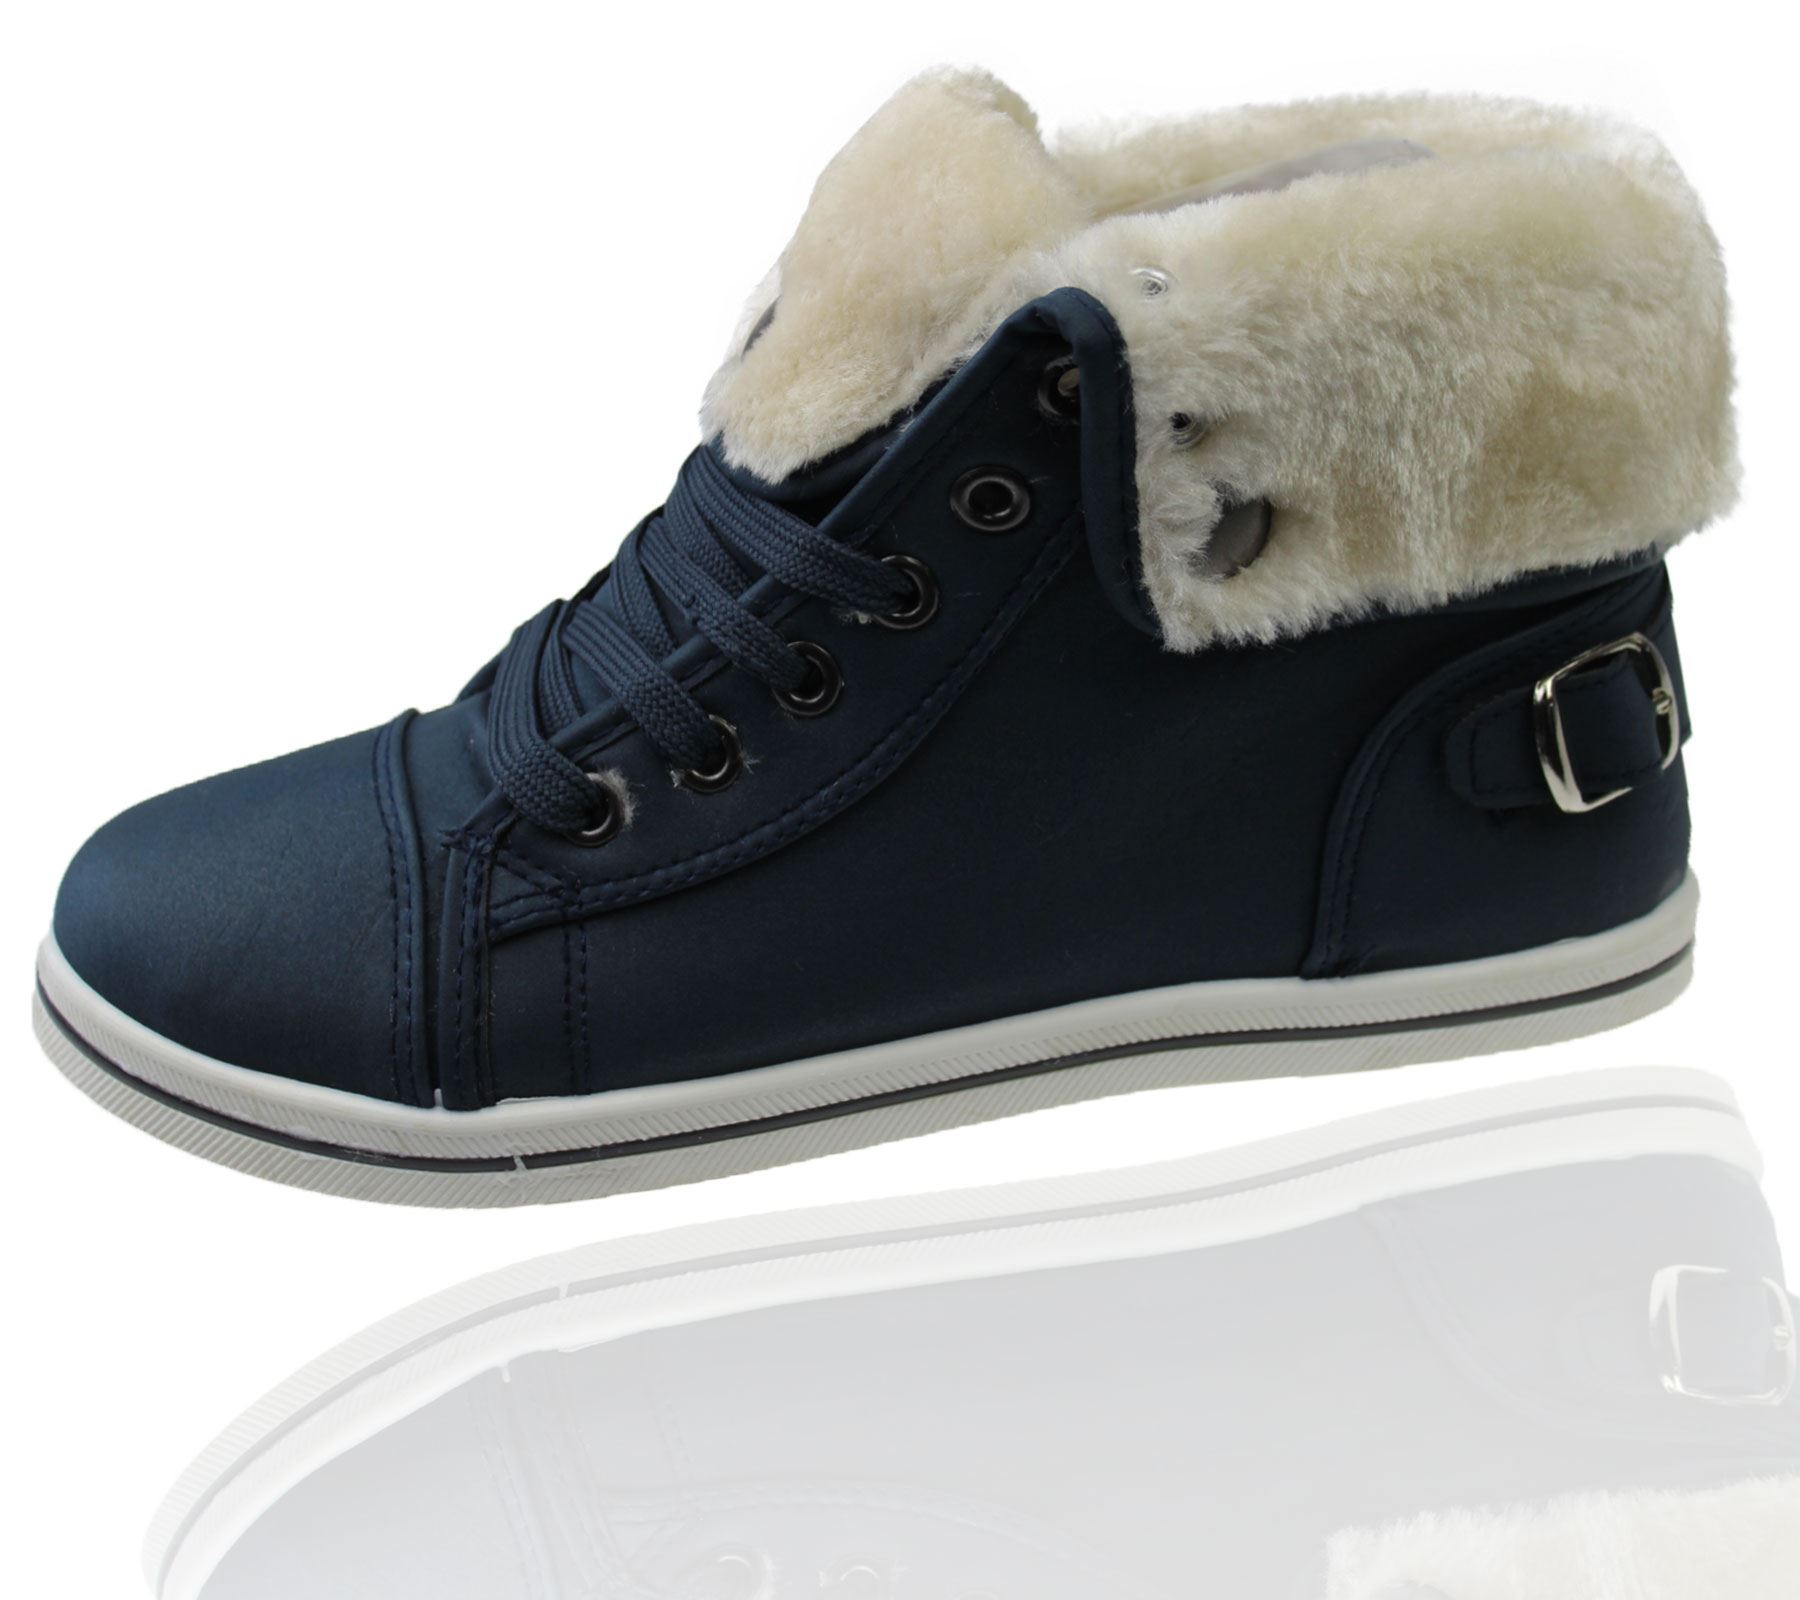 Girls-Boots-Womens-Warm-Lined-High-Top-Ankle-Trainer-Ladies-Winter-Shoes-Size miniatura 26